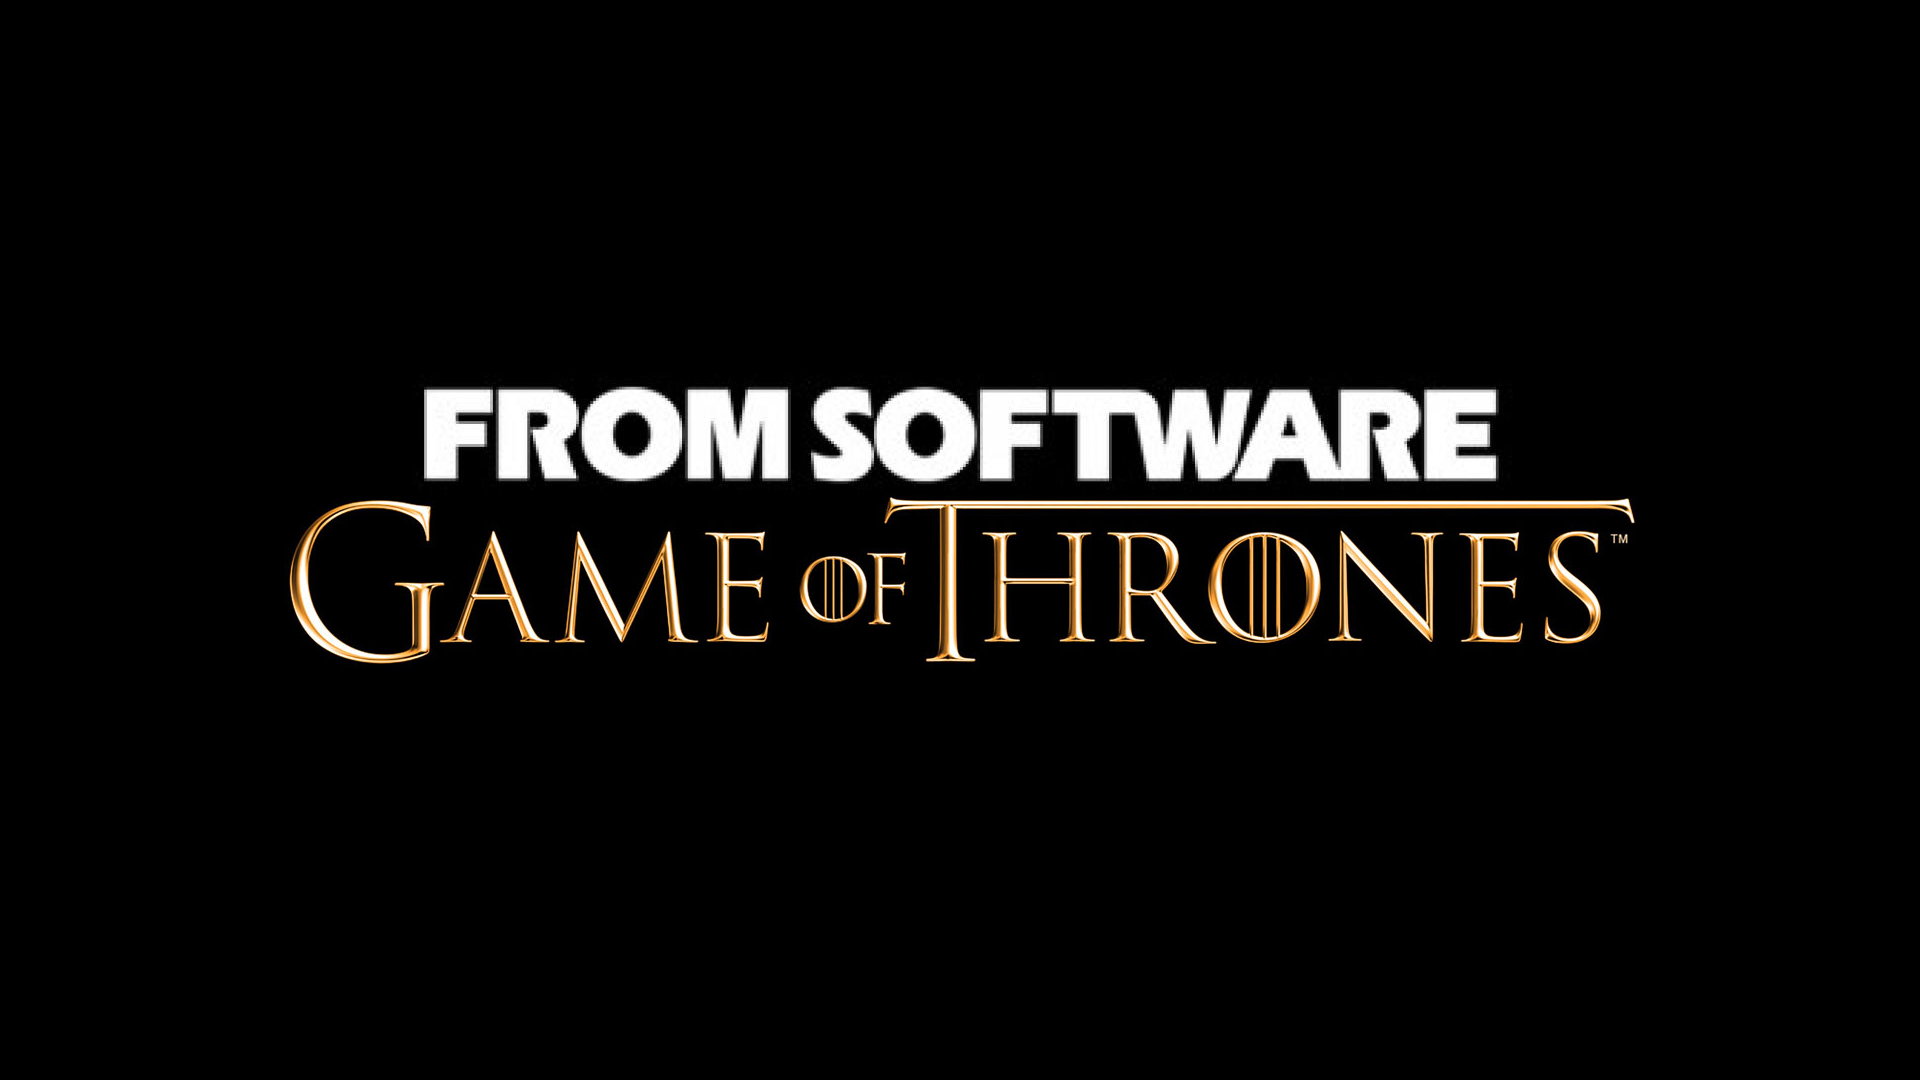 From Software Game of Thrones